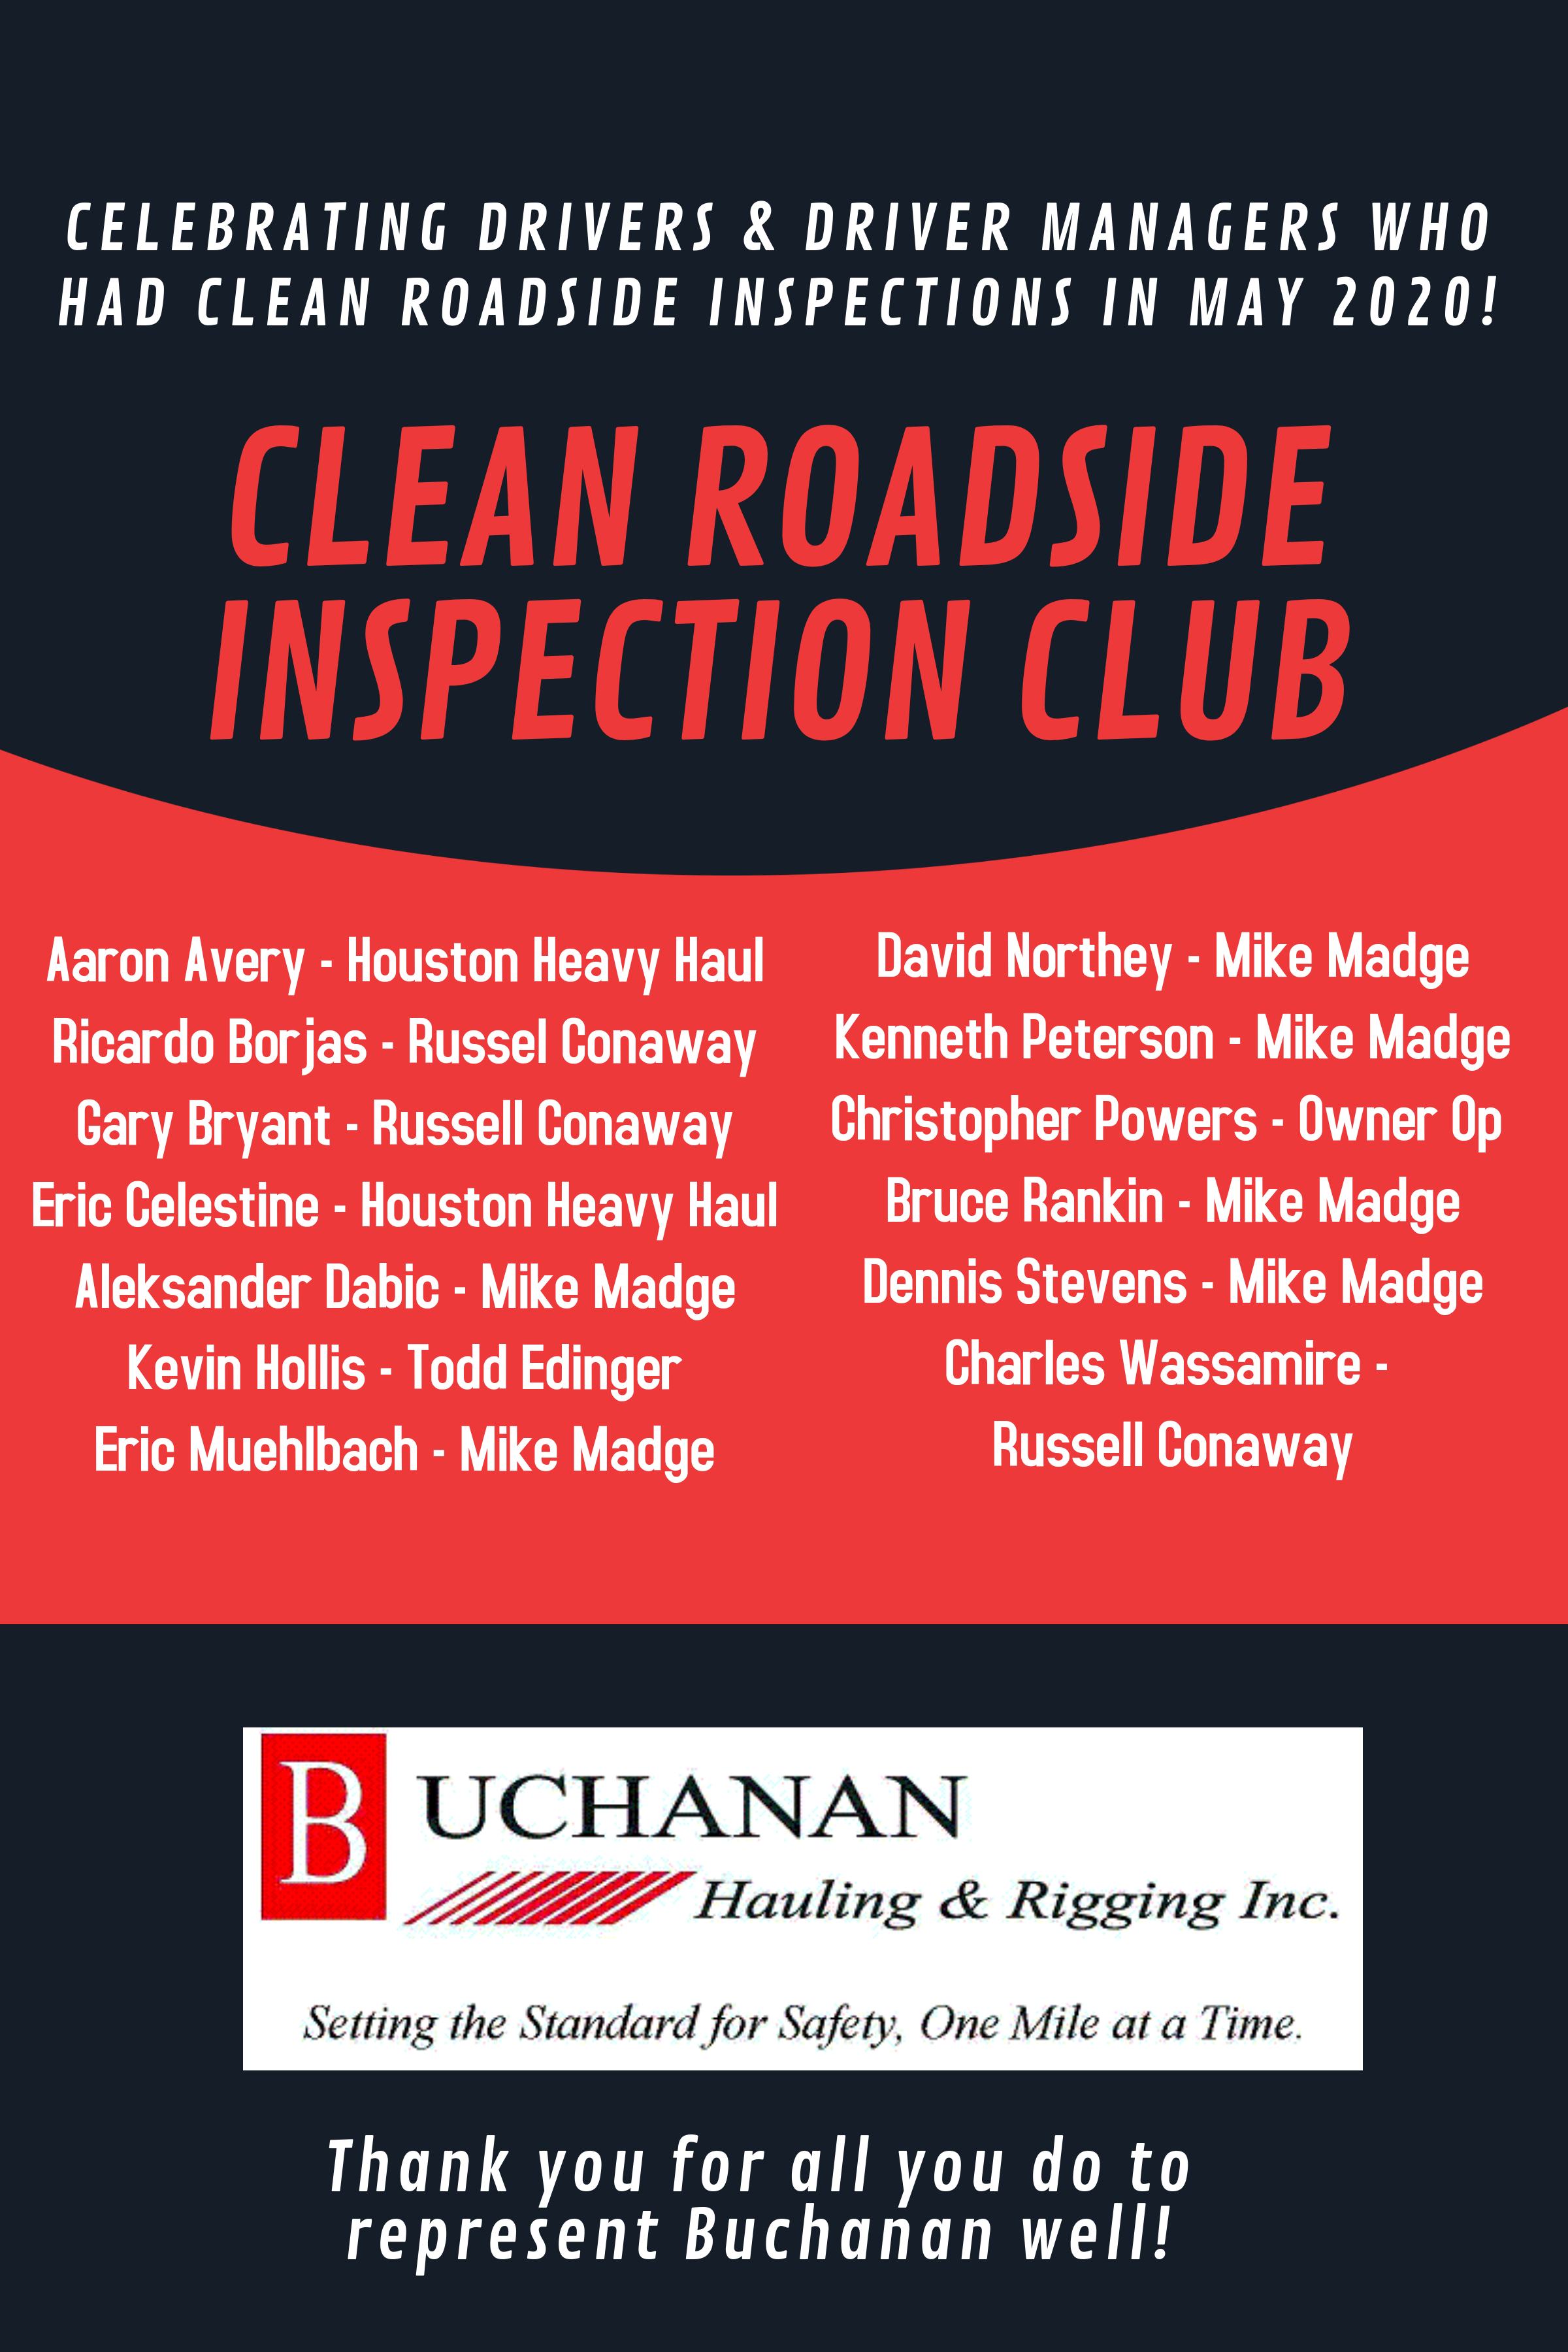 CleanRoadsideInspectionClubMay2020.jpg?Revision=WDb&Timestamp=N5yY8t